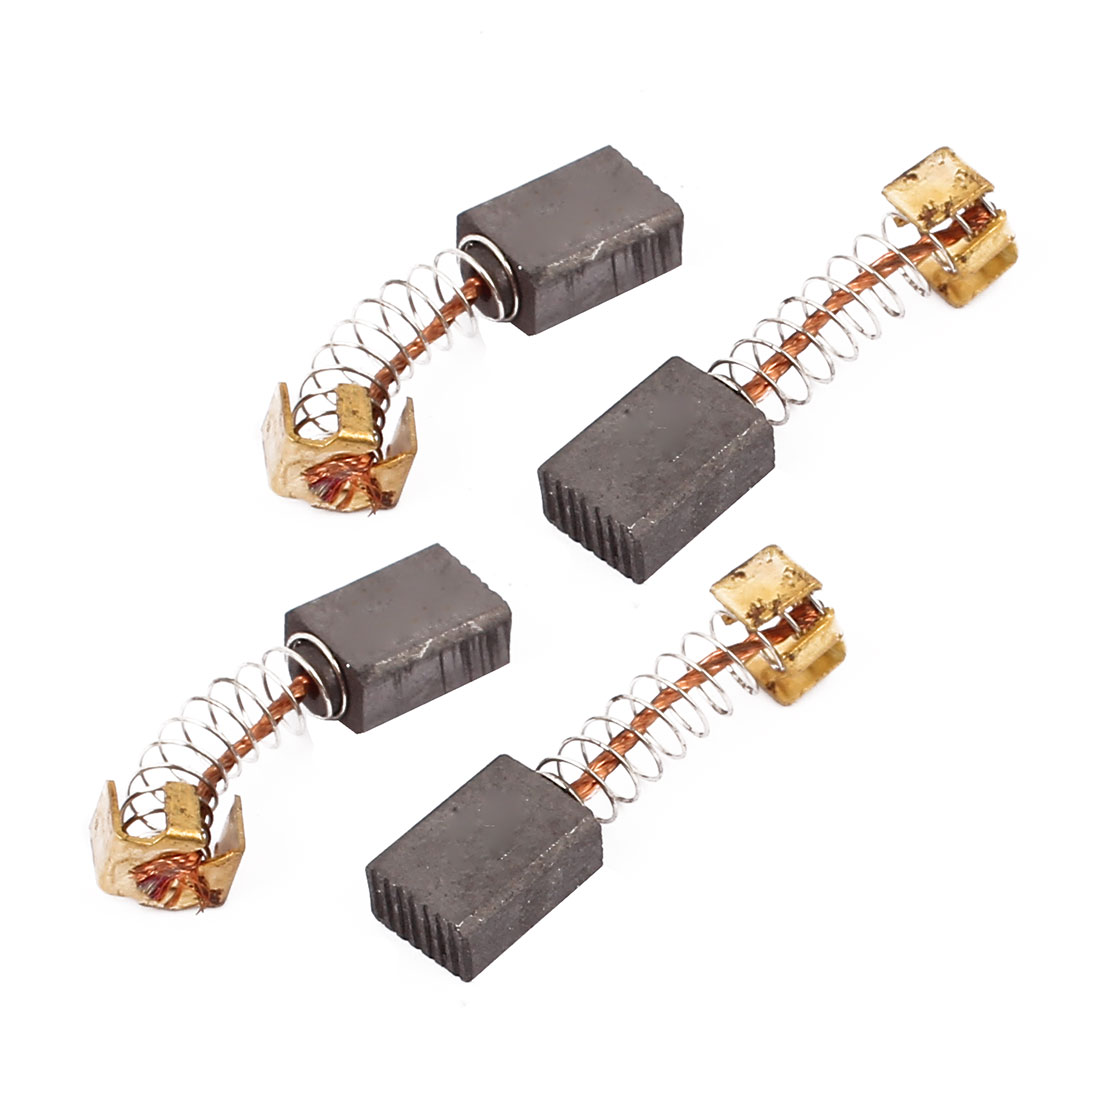 2 Pairs Carbon Brushes Power Tool 12 x 8 x 5mm for Generic Electric Motor